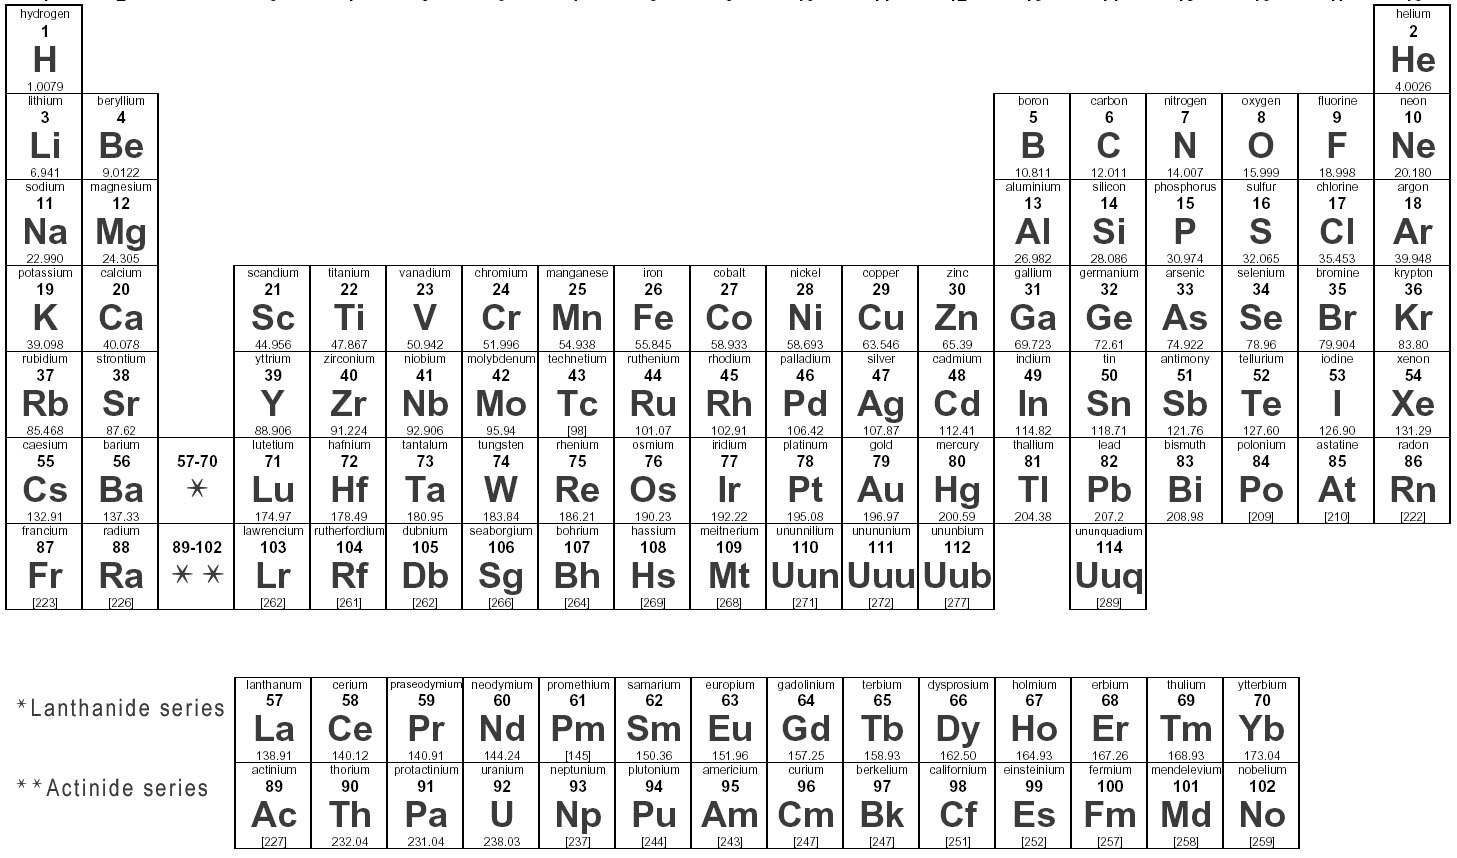 Ju00b2 + H = Element 119: Kariodisonium: Periodic Table Trends